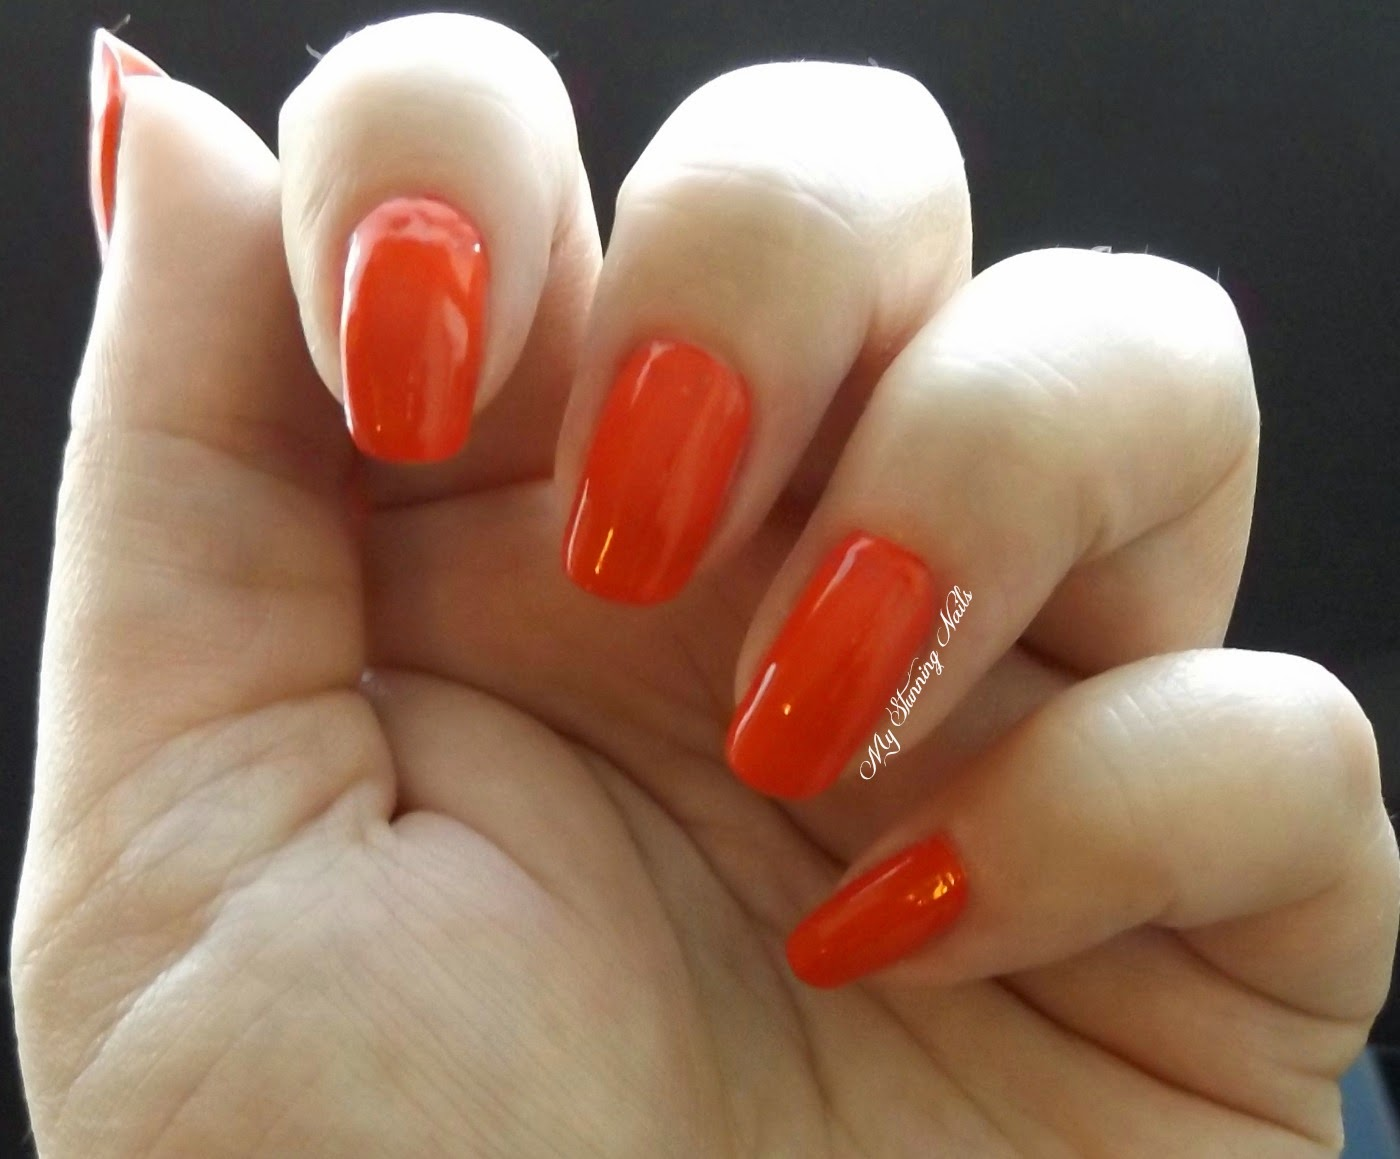 Jessica Phēnom - A Review - My Stunning Nails